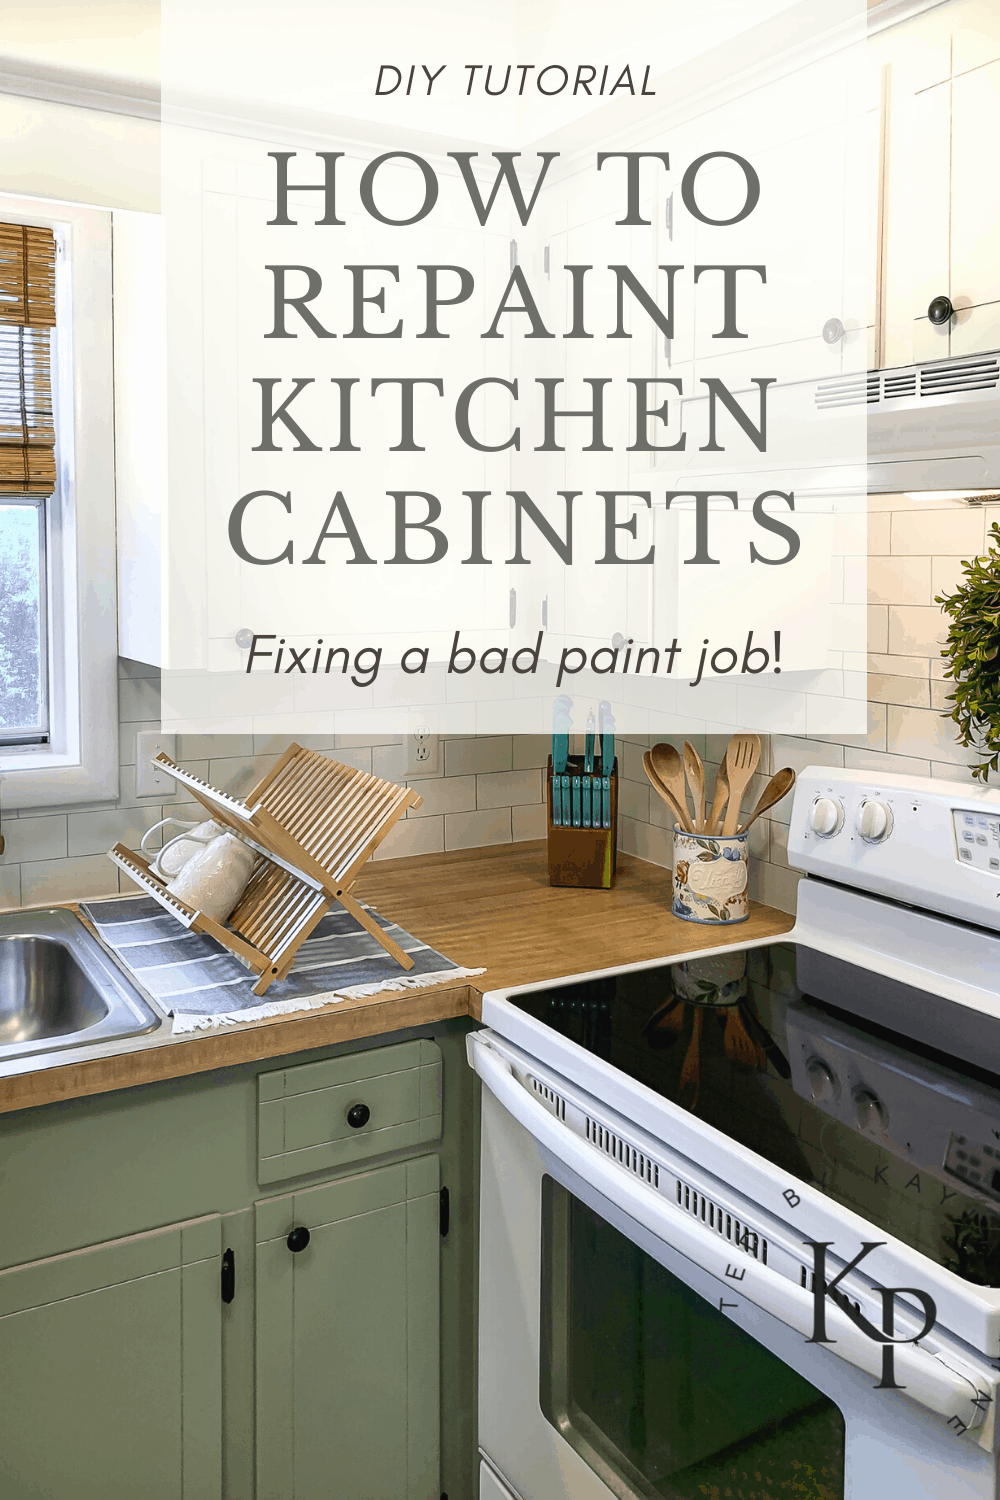 How To Repaint Kitchen Cabinets Painted By Kayla Payne